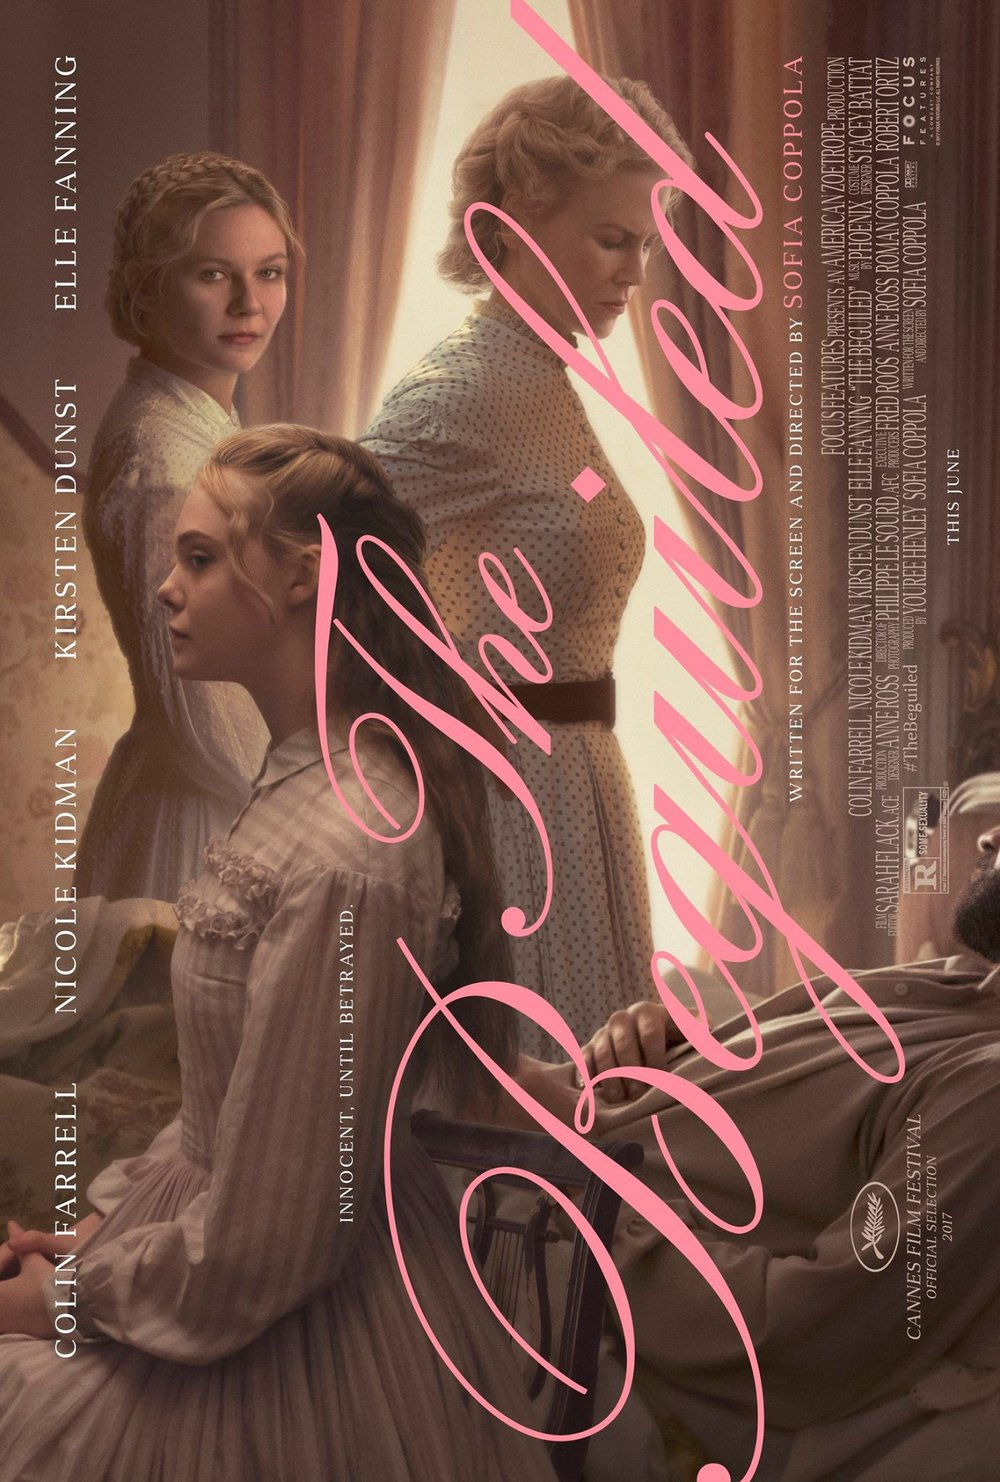 the beguiled, the beguiled movie, kirsten dunst, sofia coppola, nicole kidman, colin farrel, elle fanning,